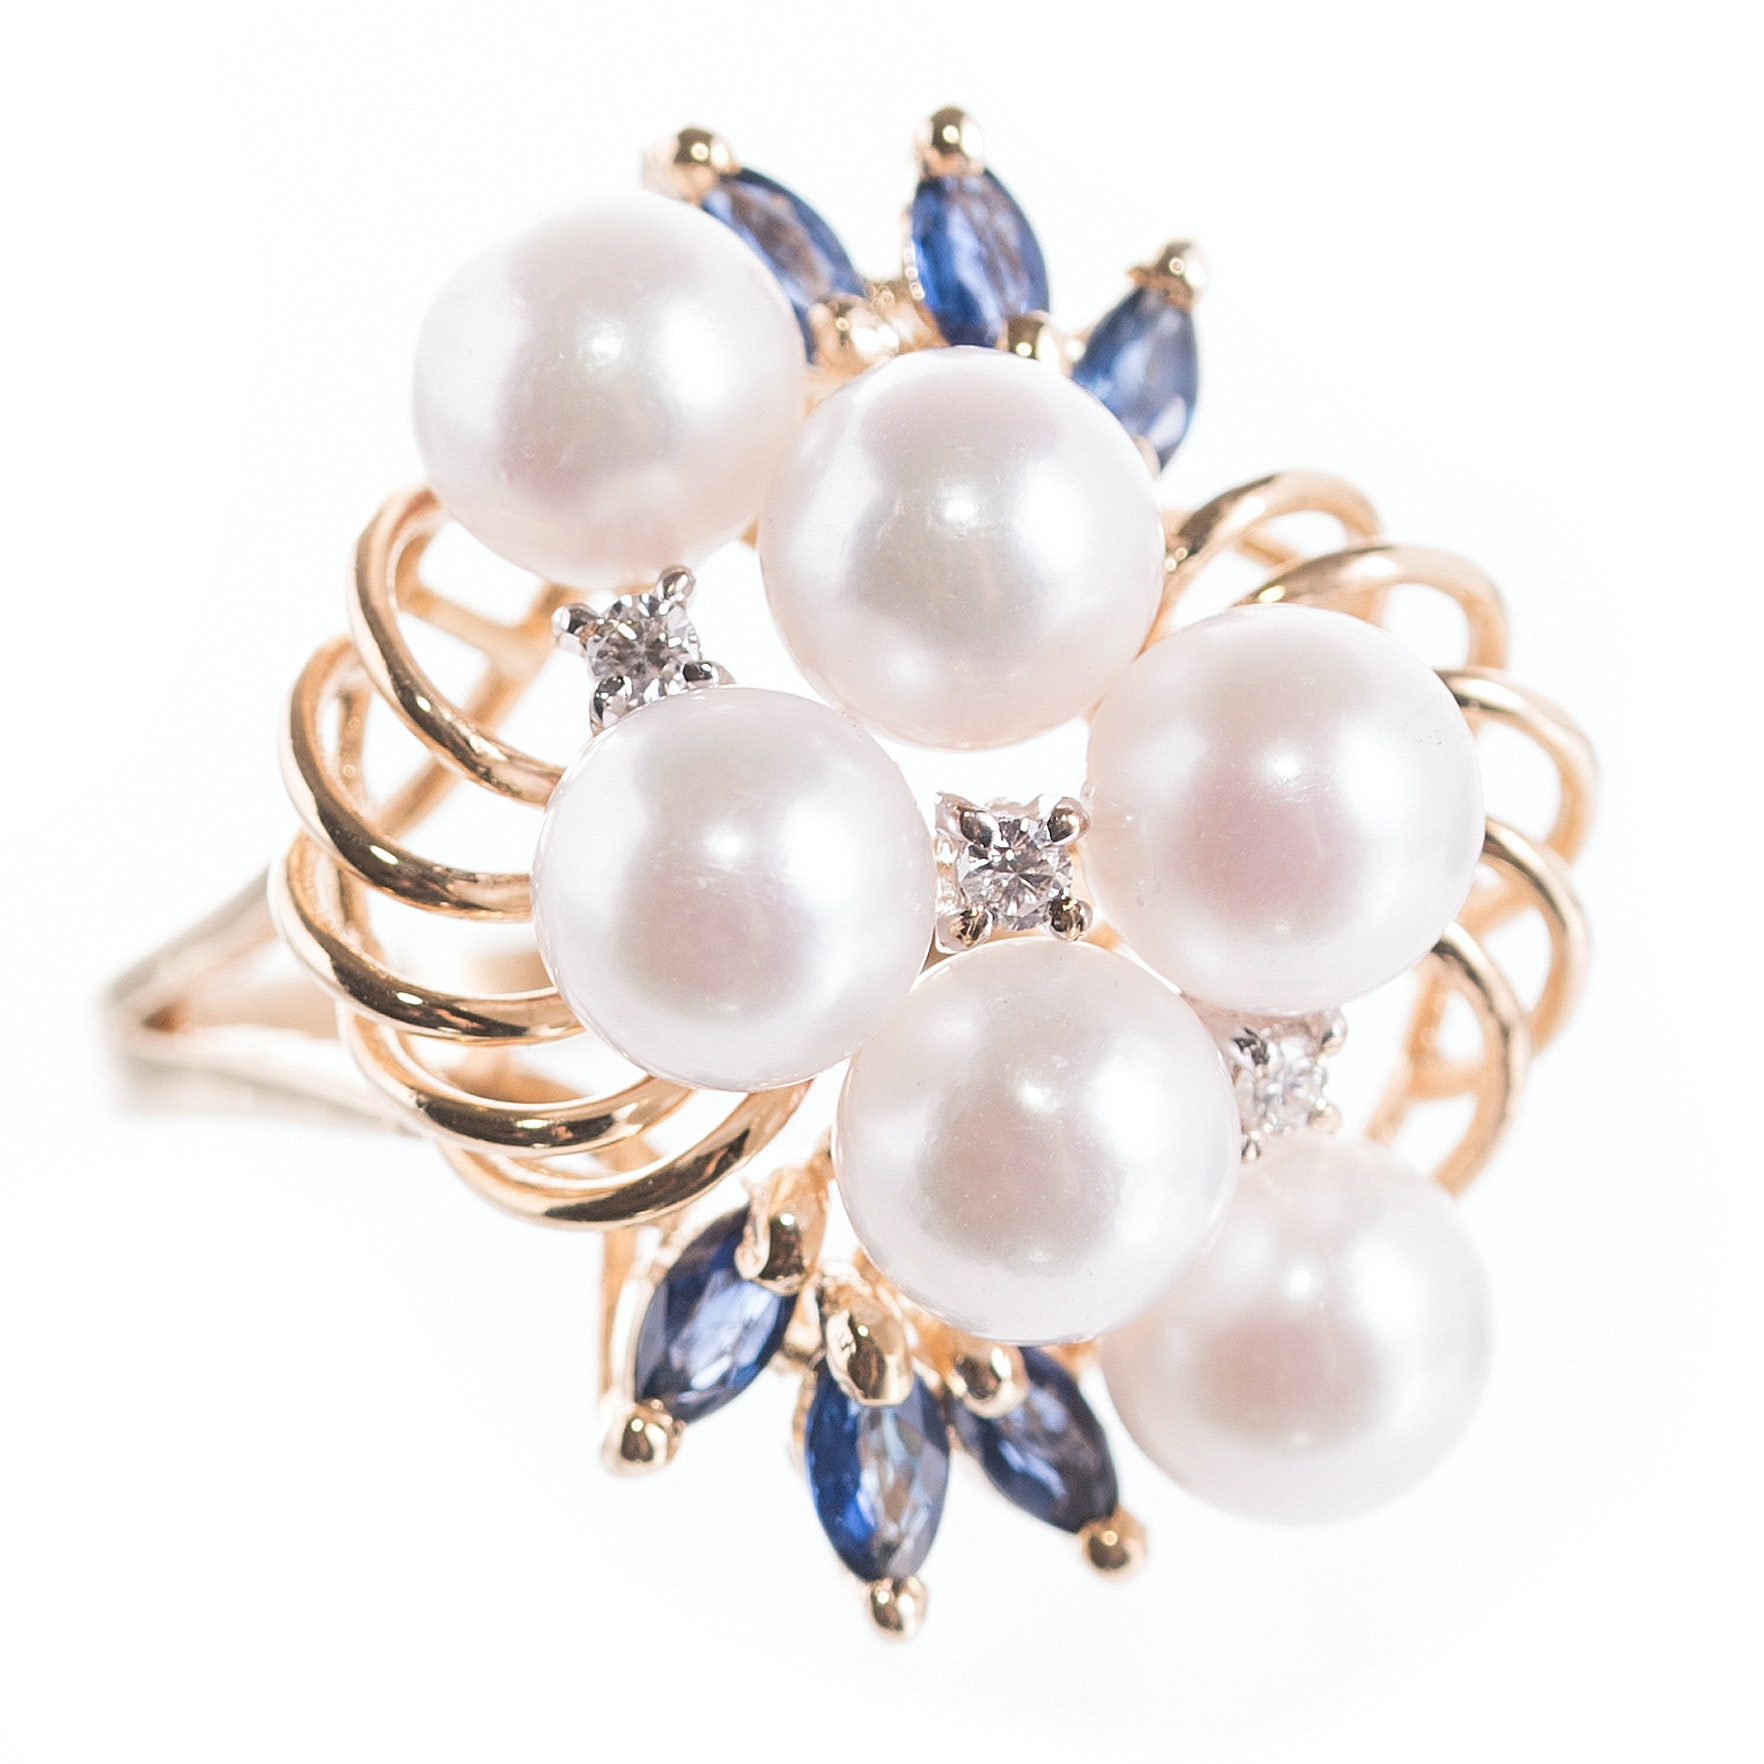 14K Yellow Gold, Cultured Pearl, Sapphire, and Diamond Swirl Ring